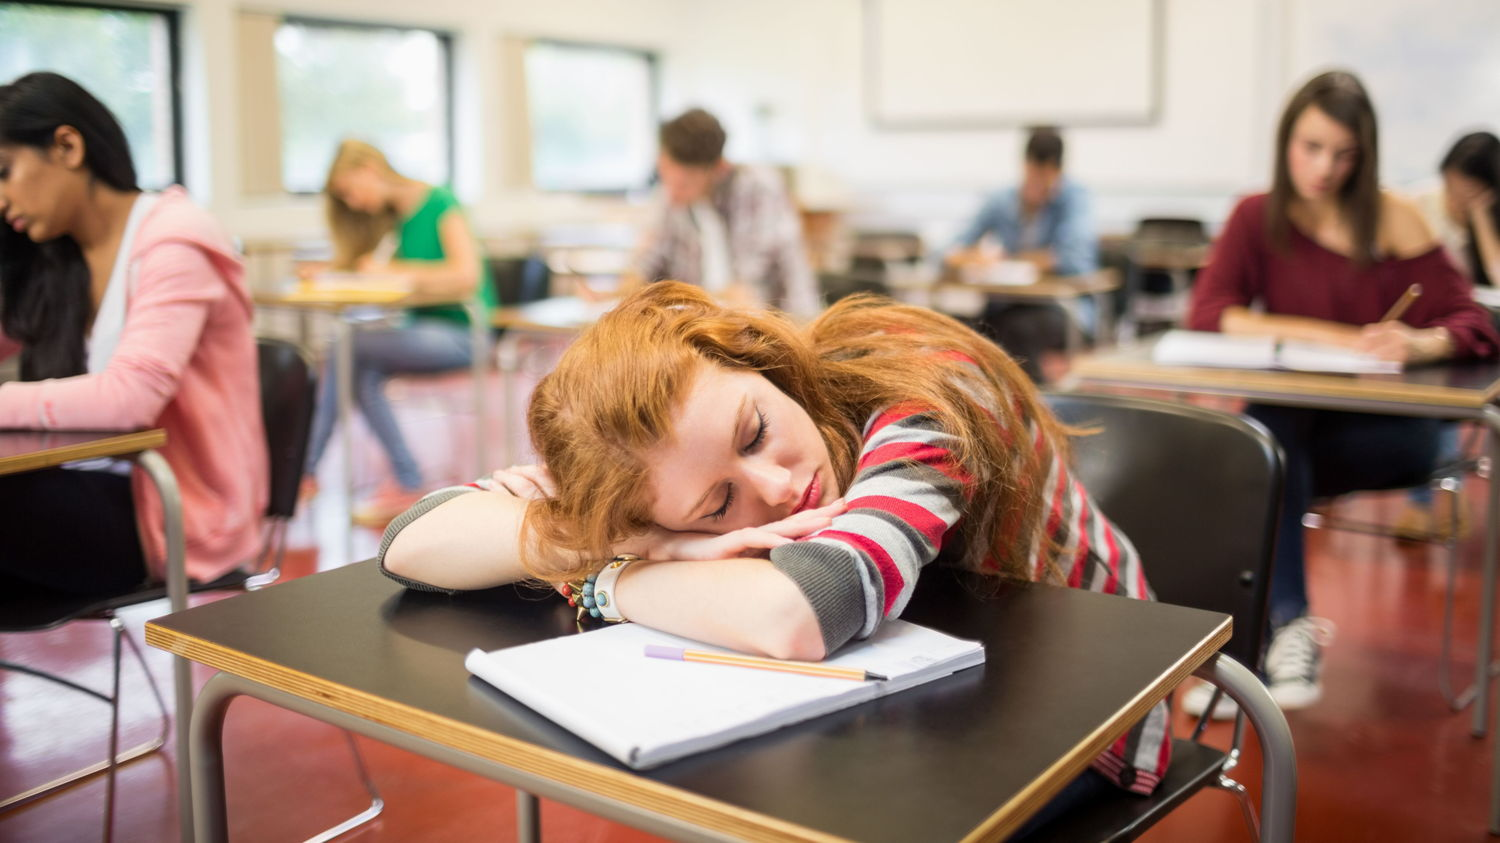 Its hard to learn when you are so tired, more sleep helps you do better in the classroom or at work